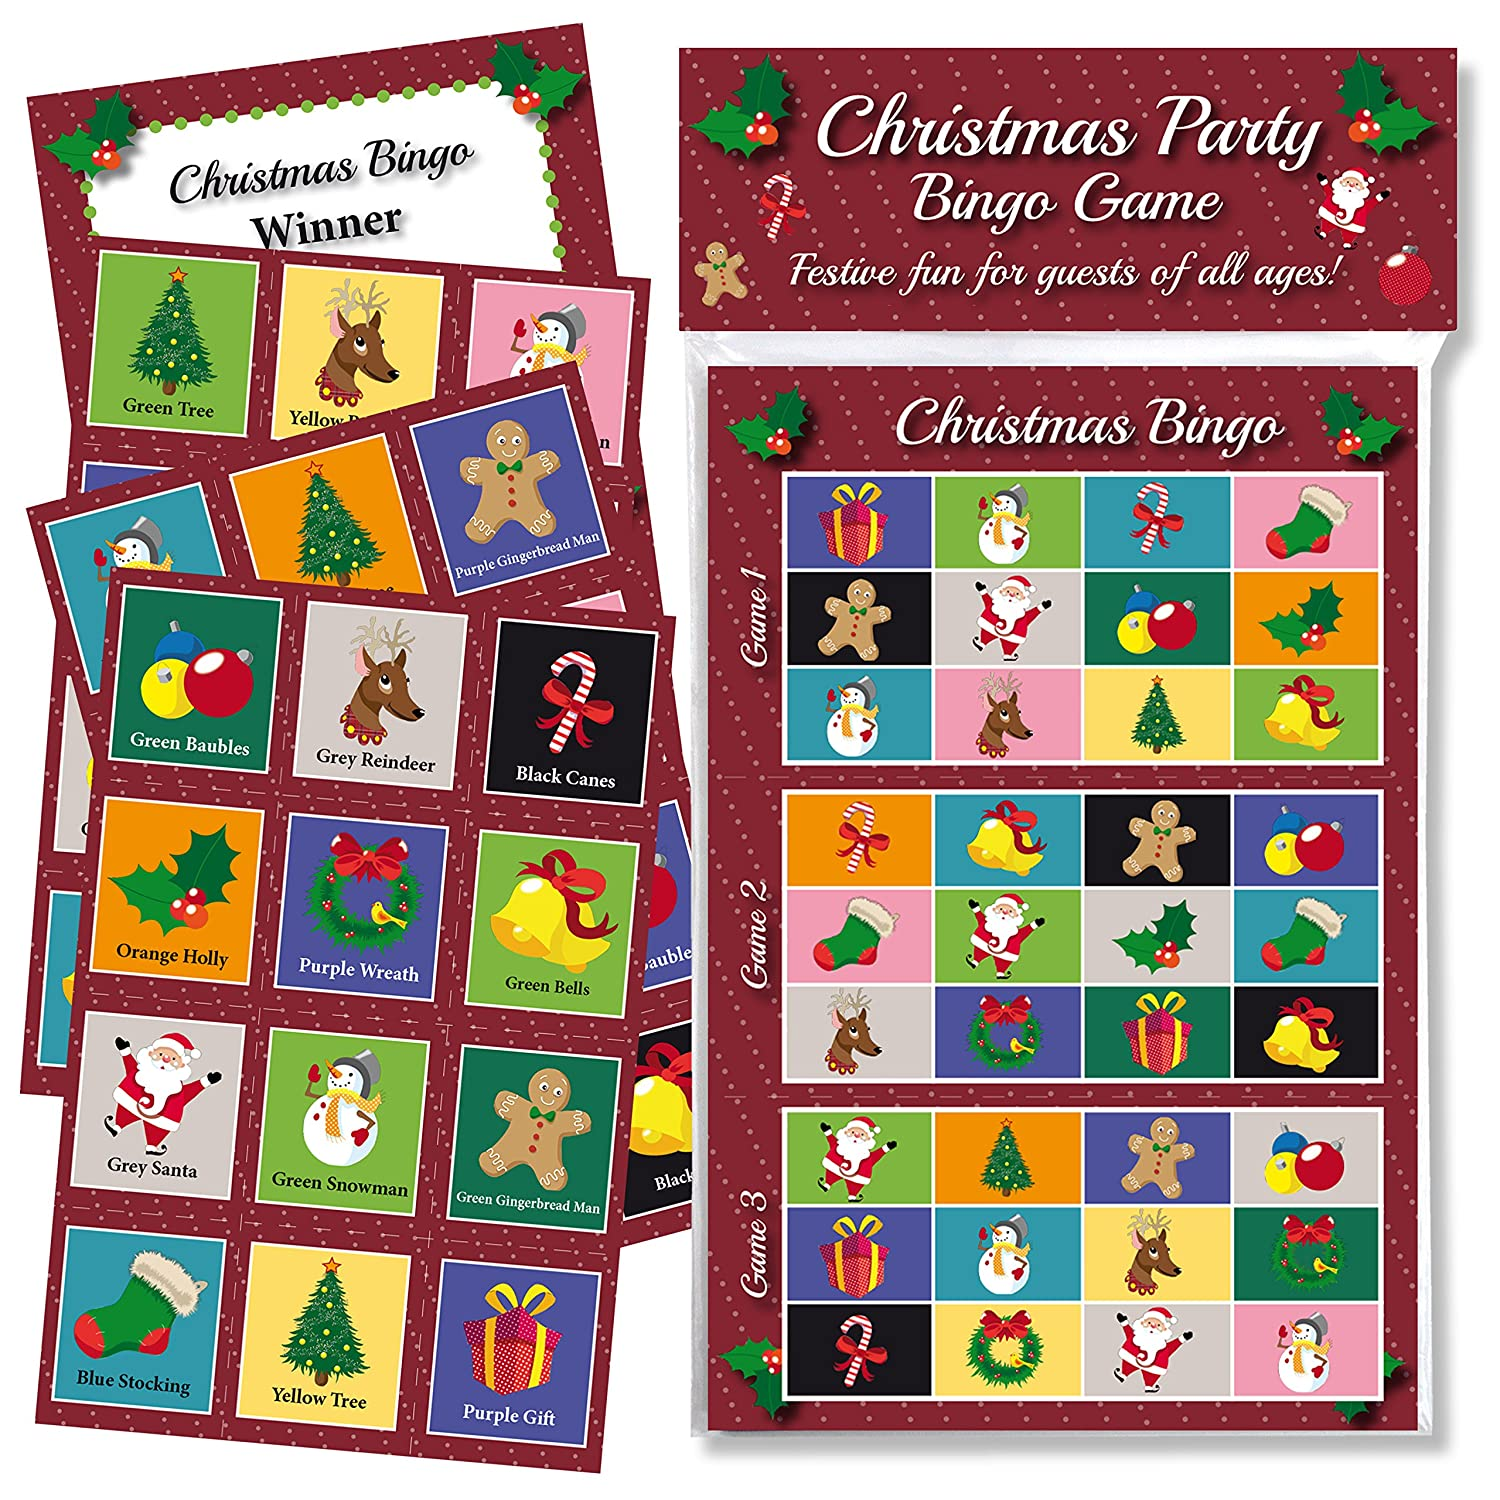 Enjoyable Office Christmas Party Games Ideas Part - 48: CHRISTMAS PARTY BINGO GAME: FUN U0026 GAMES FOR FAMILY, OFFICE AND KIDS XMAS  PARTIES WITH FREE CERTIFICATES. Ideal Novelty Gift Idea For Adults, Groups  And Kids ...